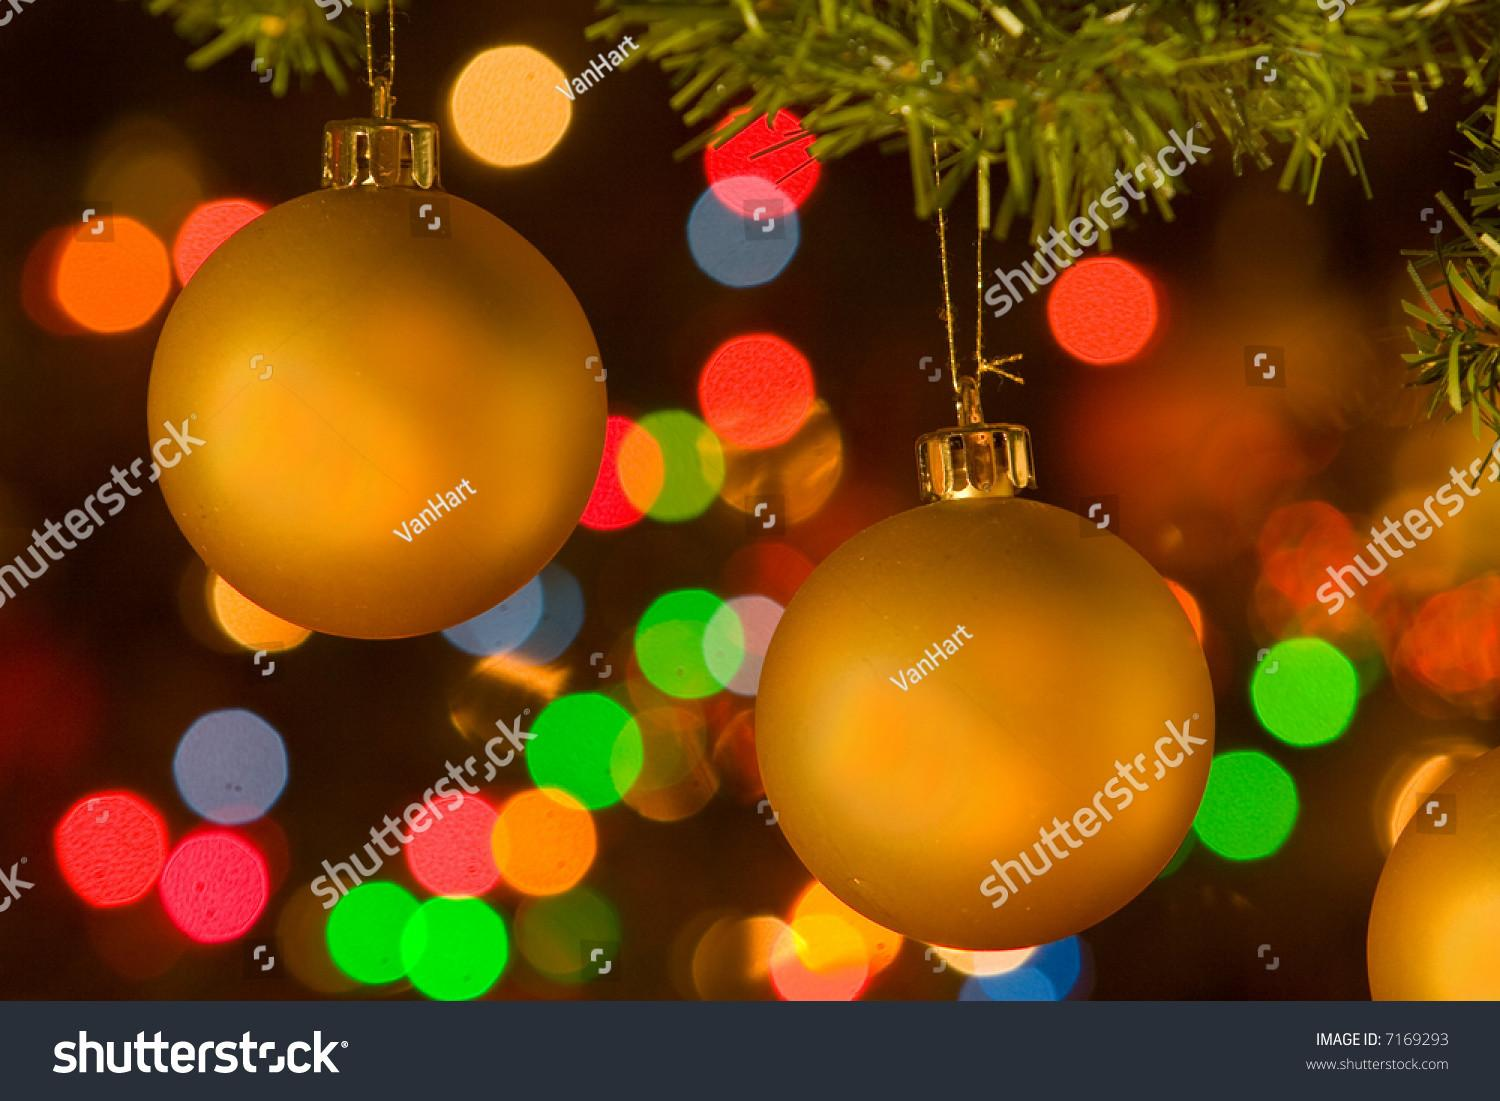 Golden Yellow Christmas Ornaments Hanging